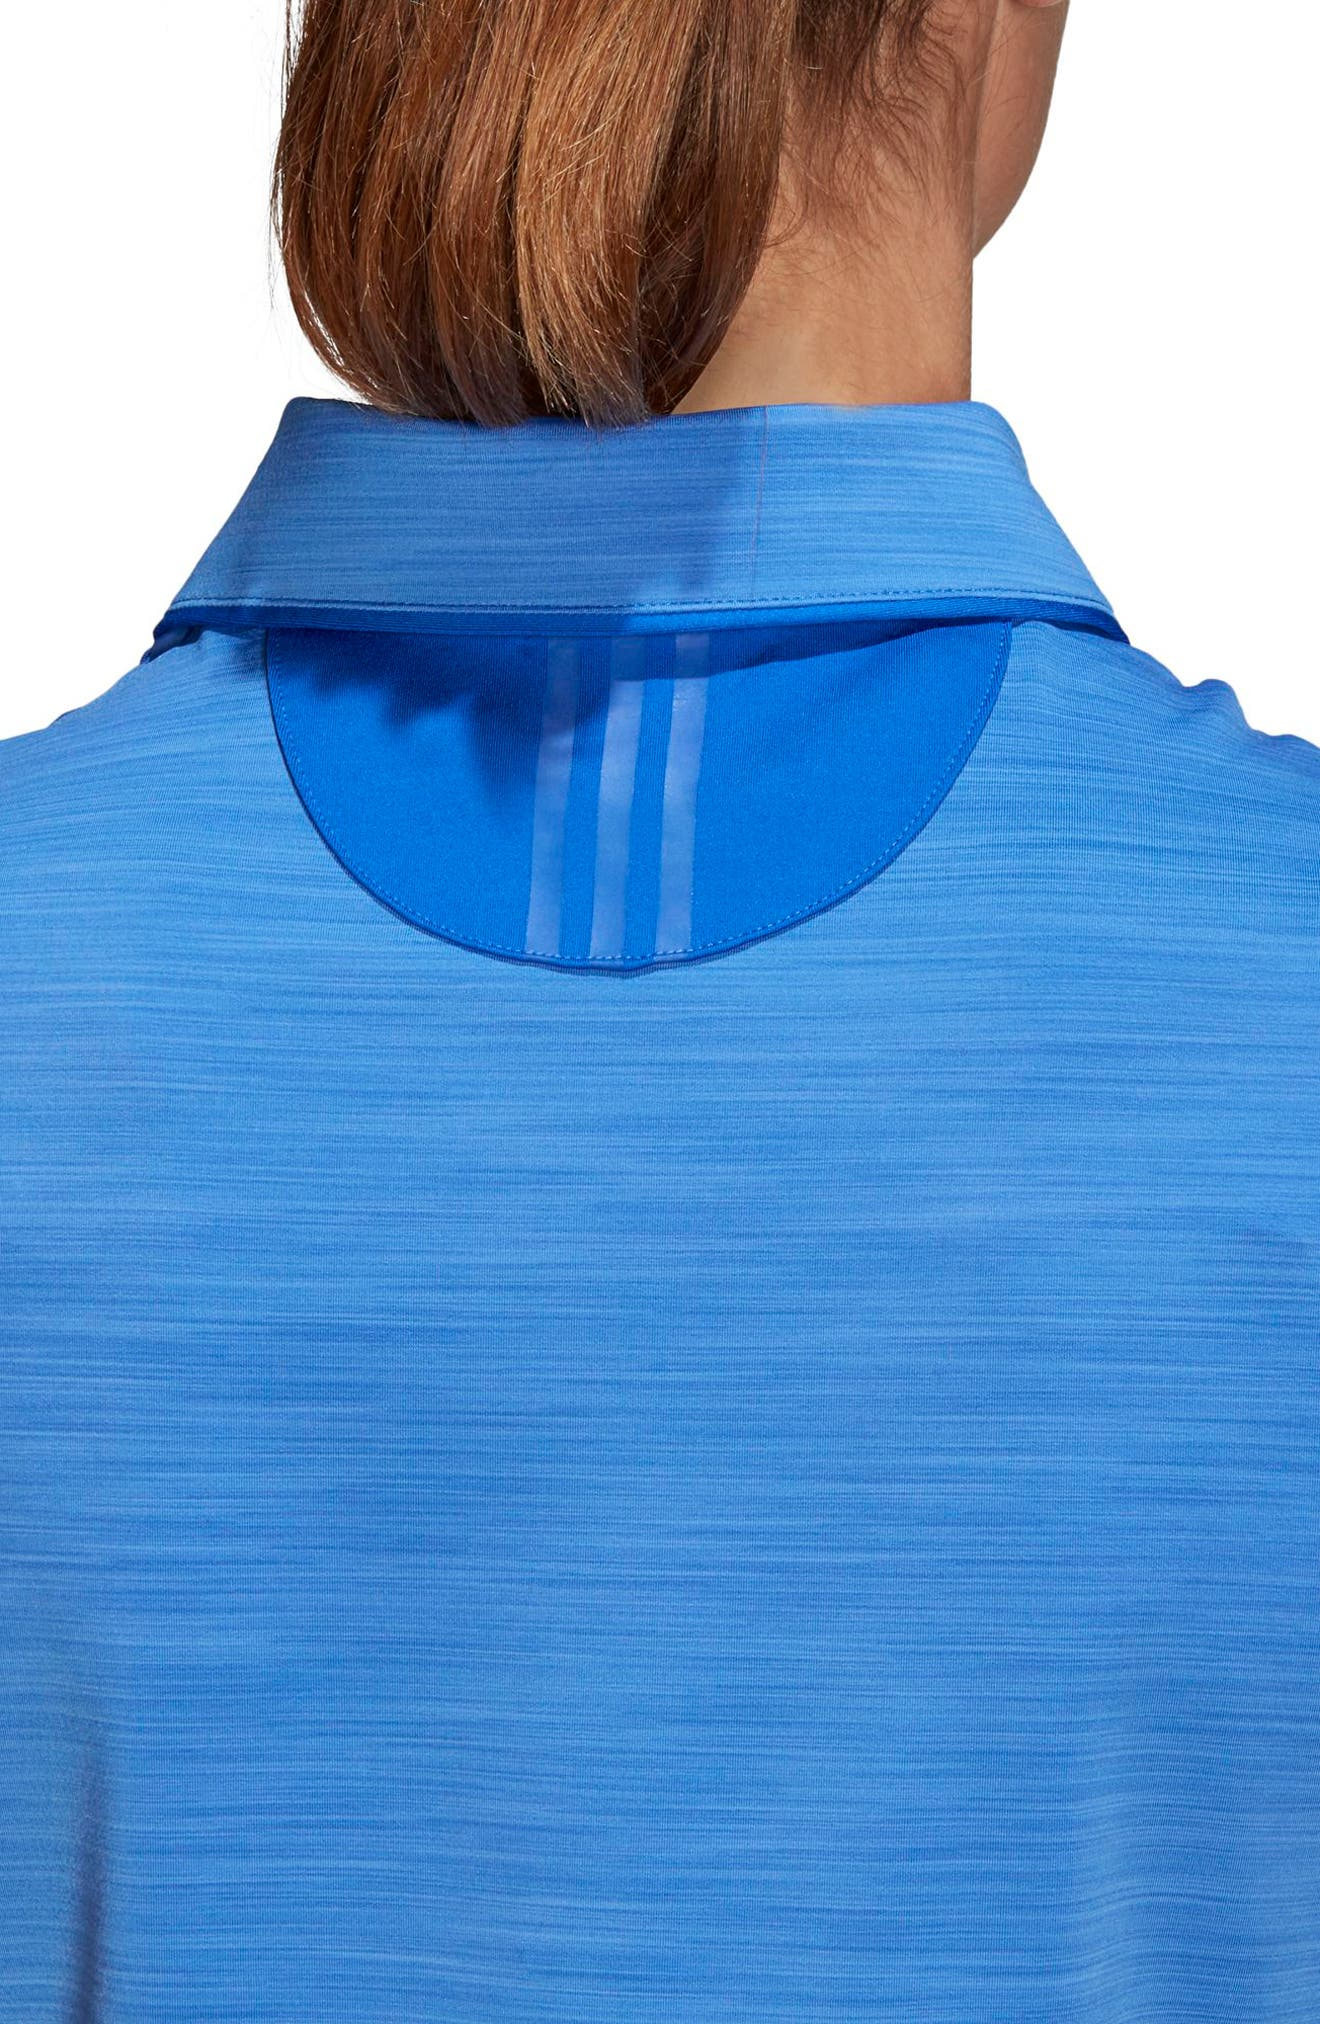 Ultimate365 Sleeveless Golf Polo,                             Alternate thumbnail 6, color,                             Hi-Res Blue